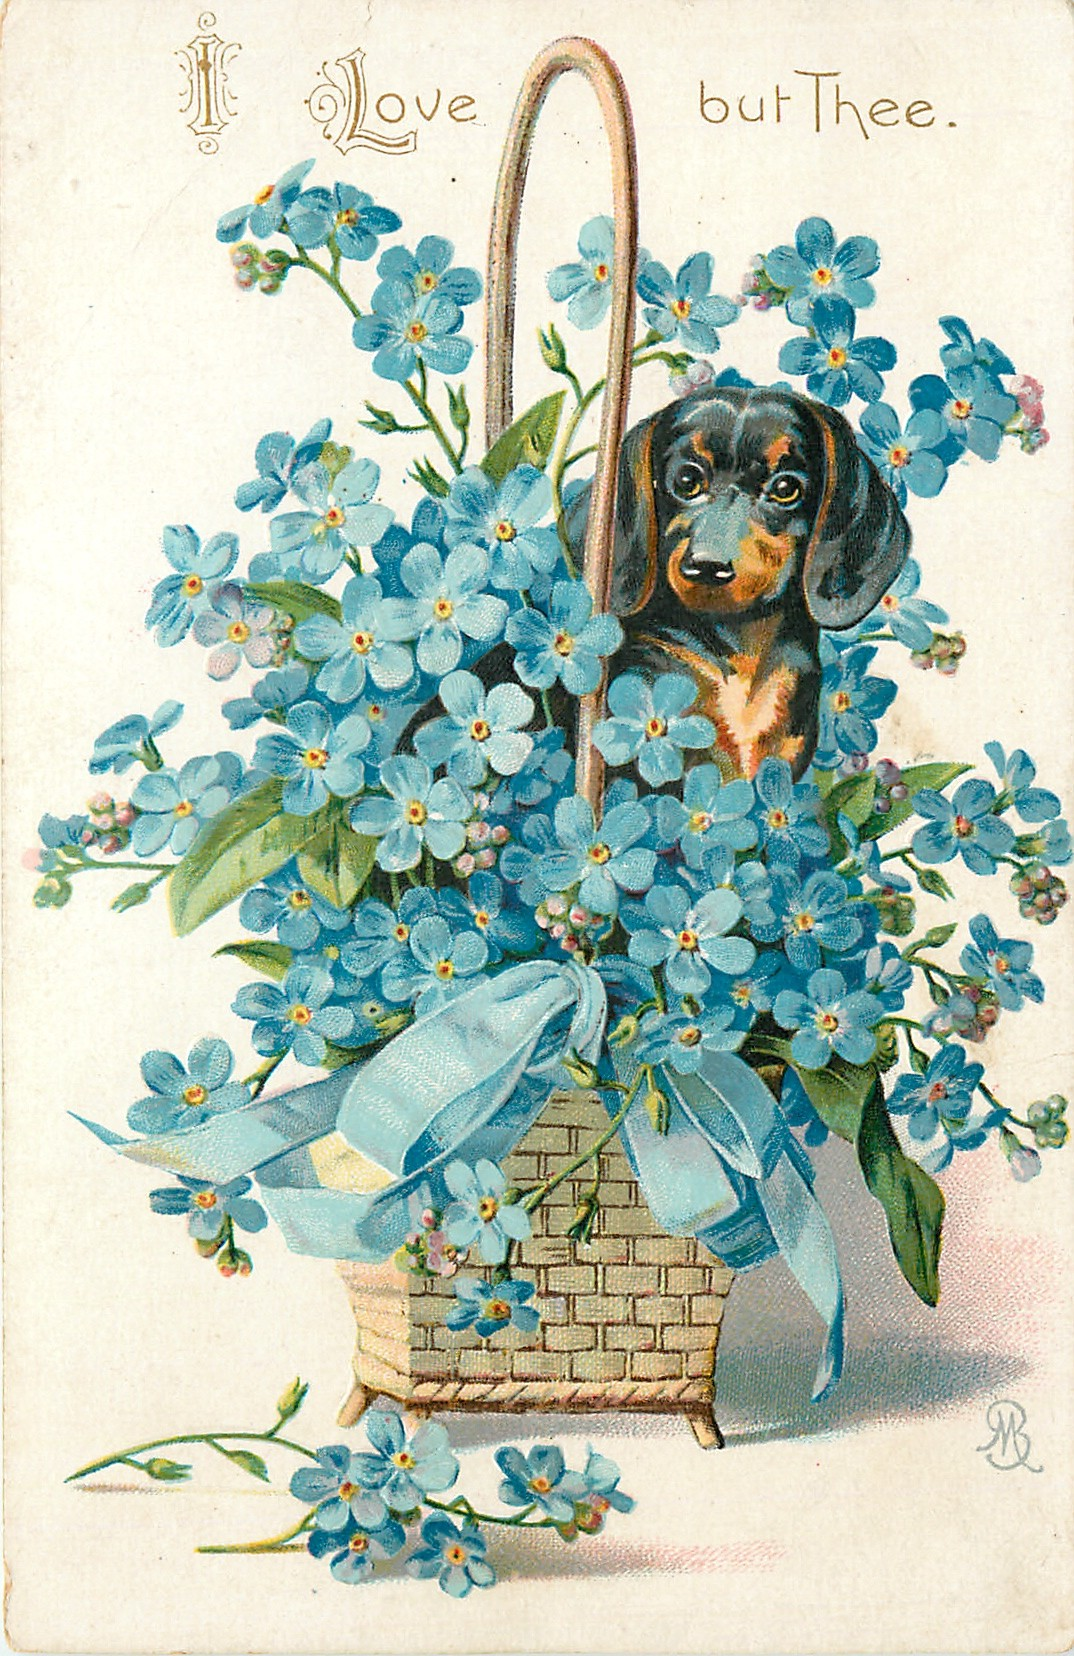 I LOVE BUT THEE Dachshund In Basket Of Forget Me Nots